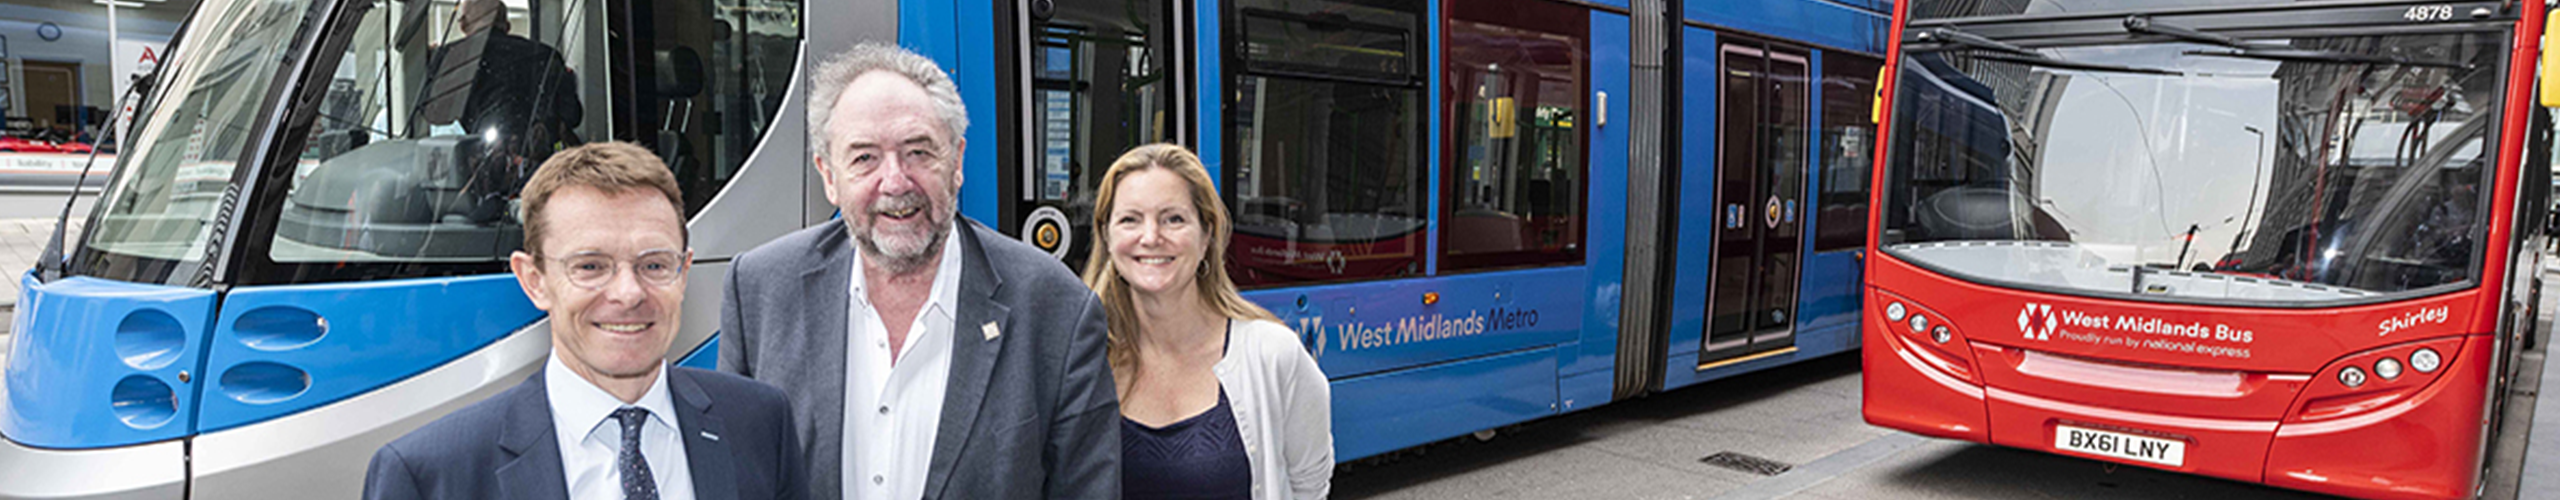 Transport For West Midlands Reveals a New Public Transport Identity